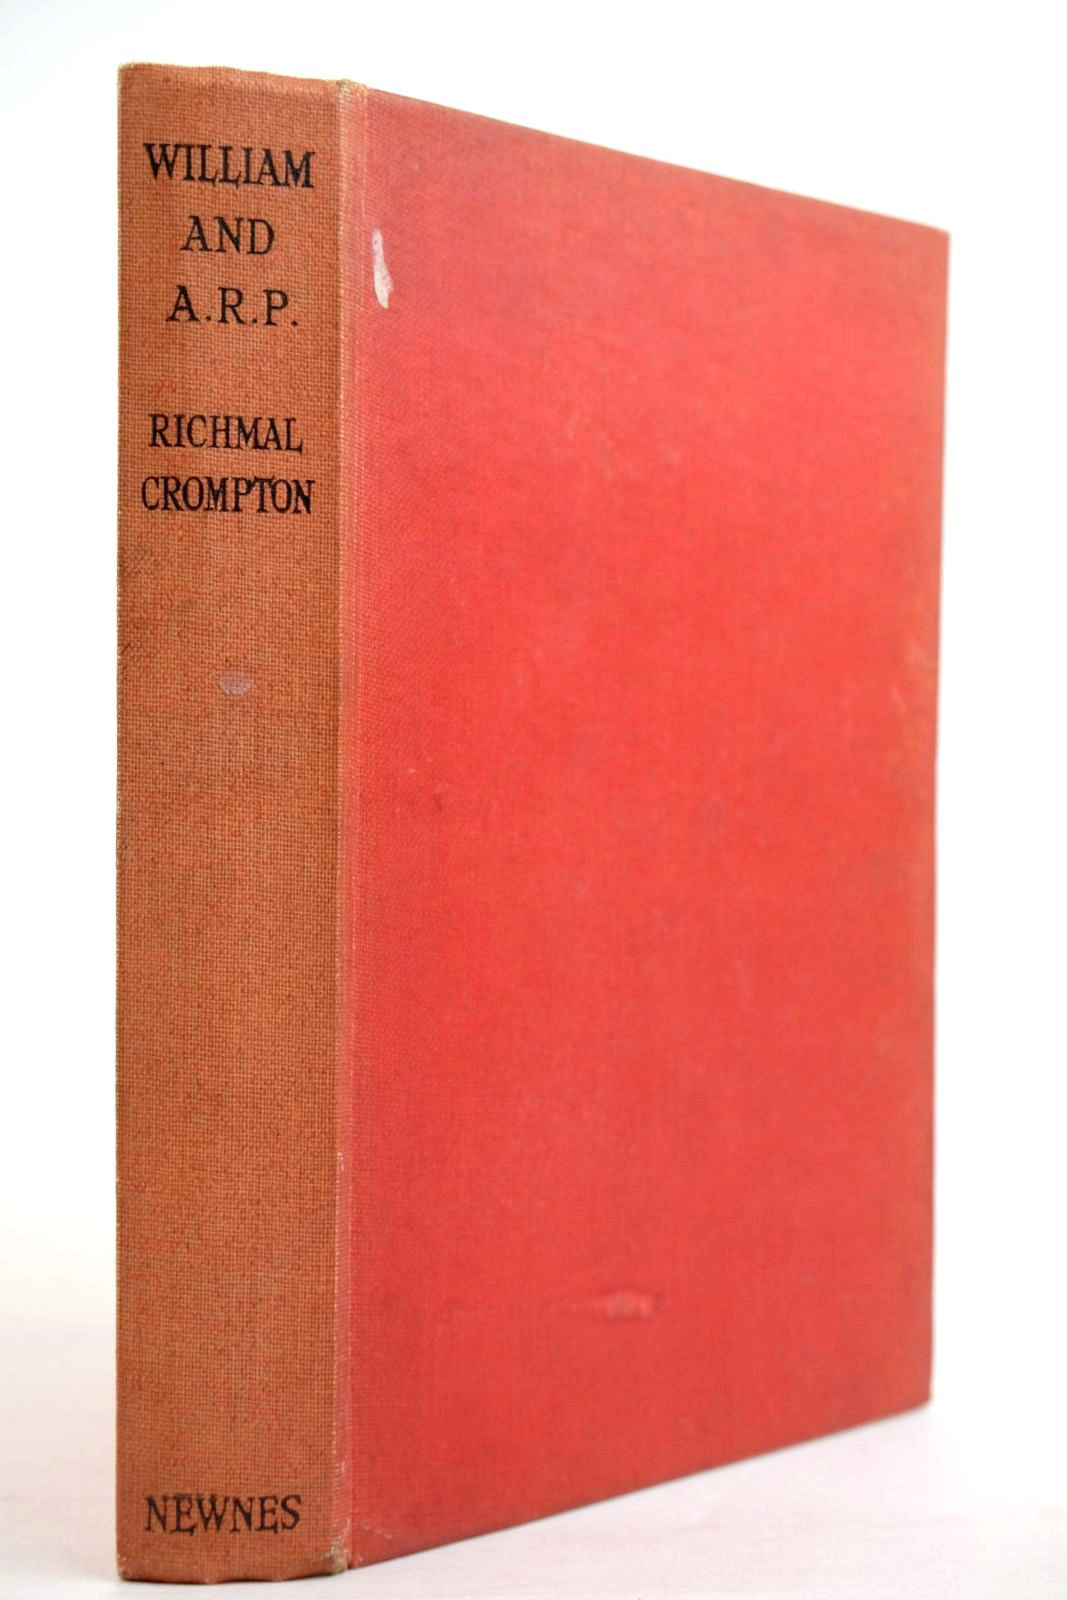 Photo of WILLIAM AND A.R.P. written by Crompton, Richmal illustrated by Henry, Thomas published by George Newnes Limited (STOCK CODE: 2134373)  for sale by Stella & Rose's Books